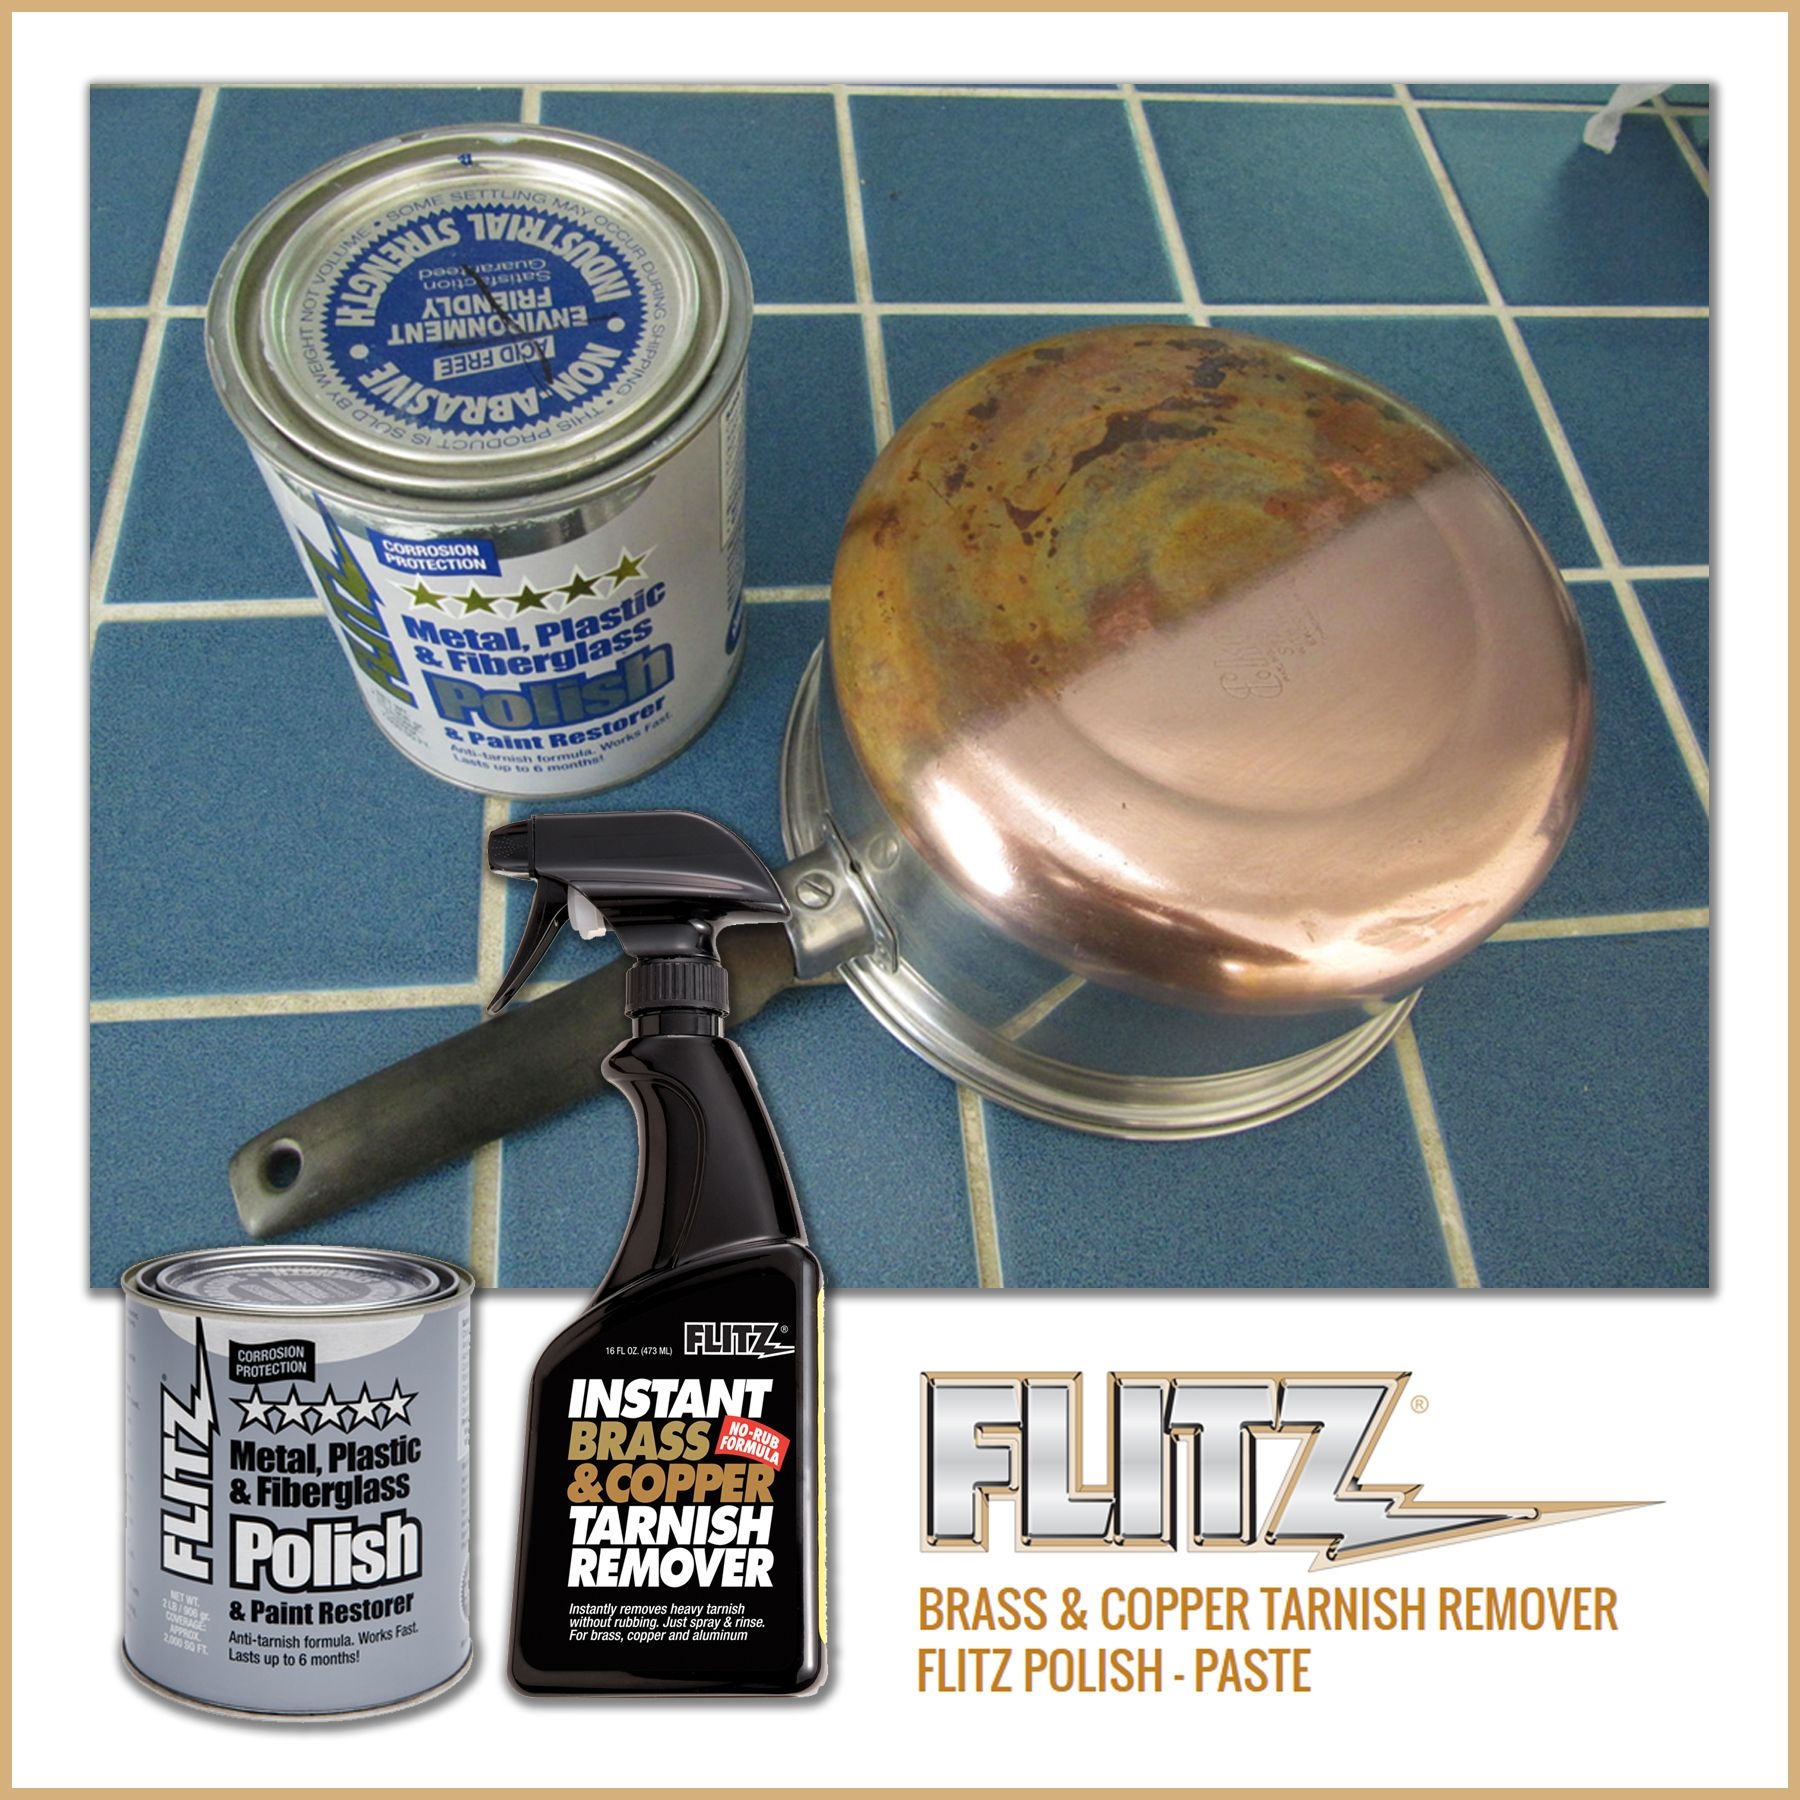 Pin by Flitz Polish on Flitz Polishing Products | Pinterest ...